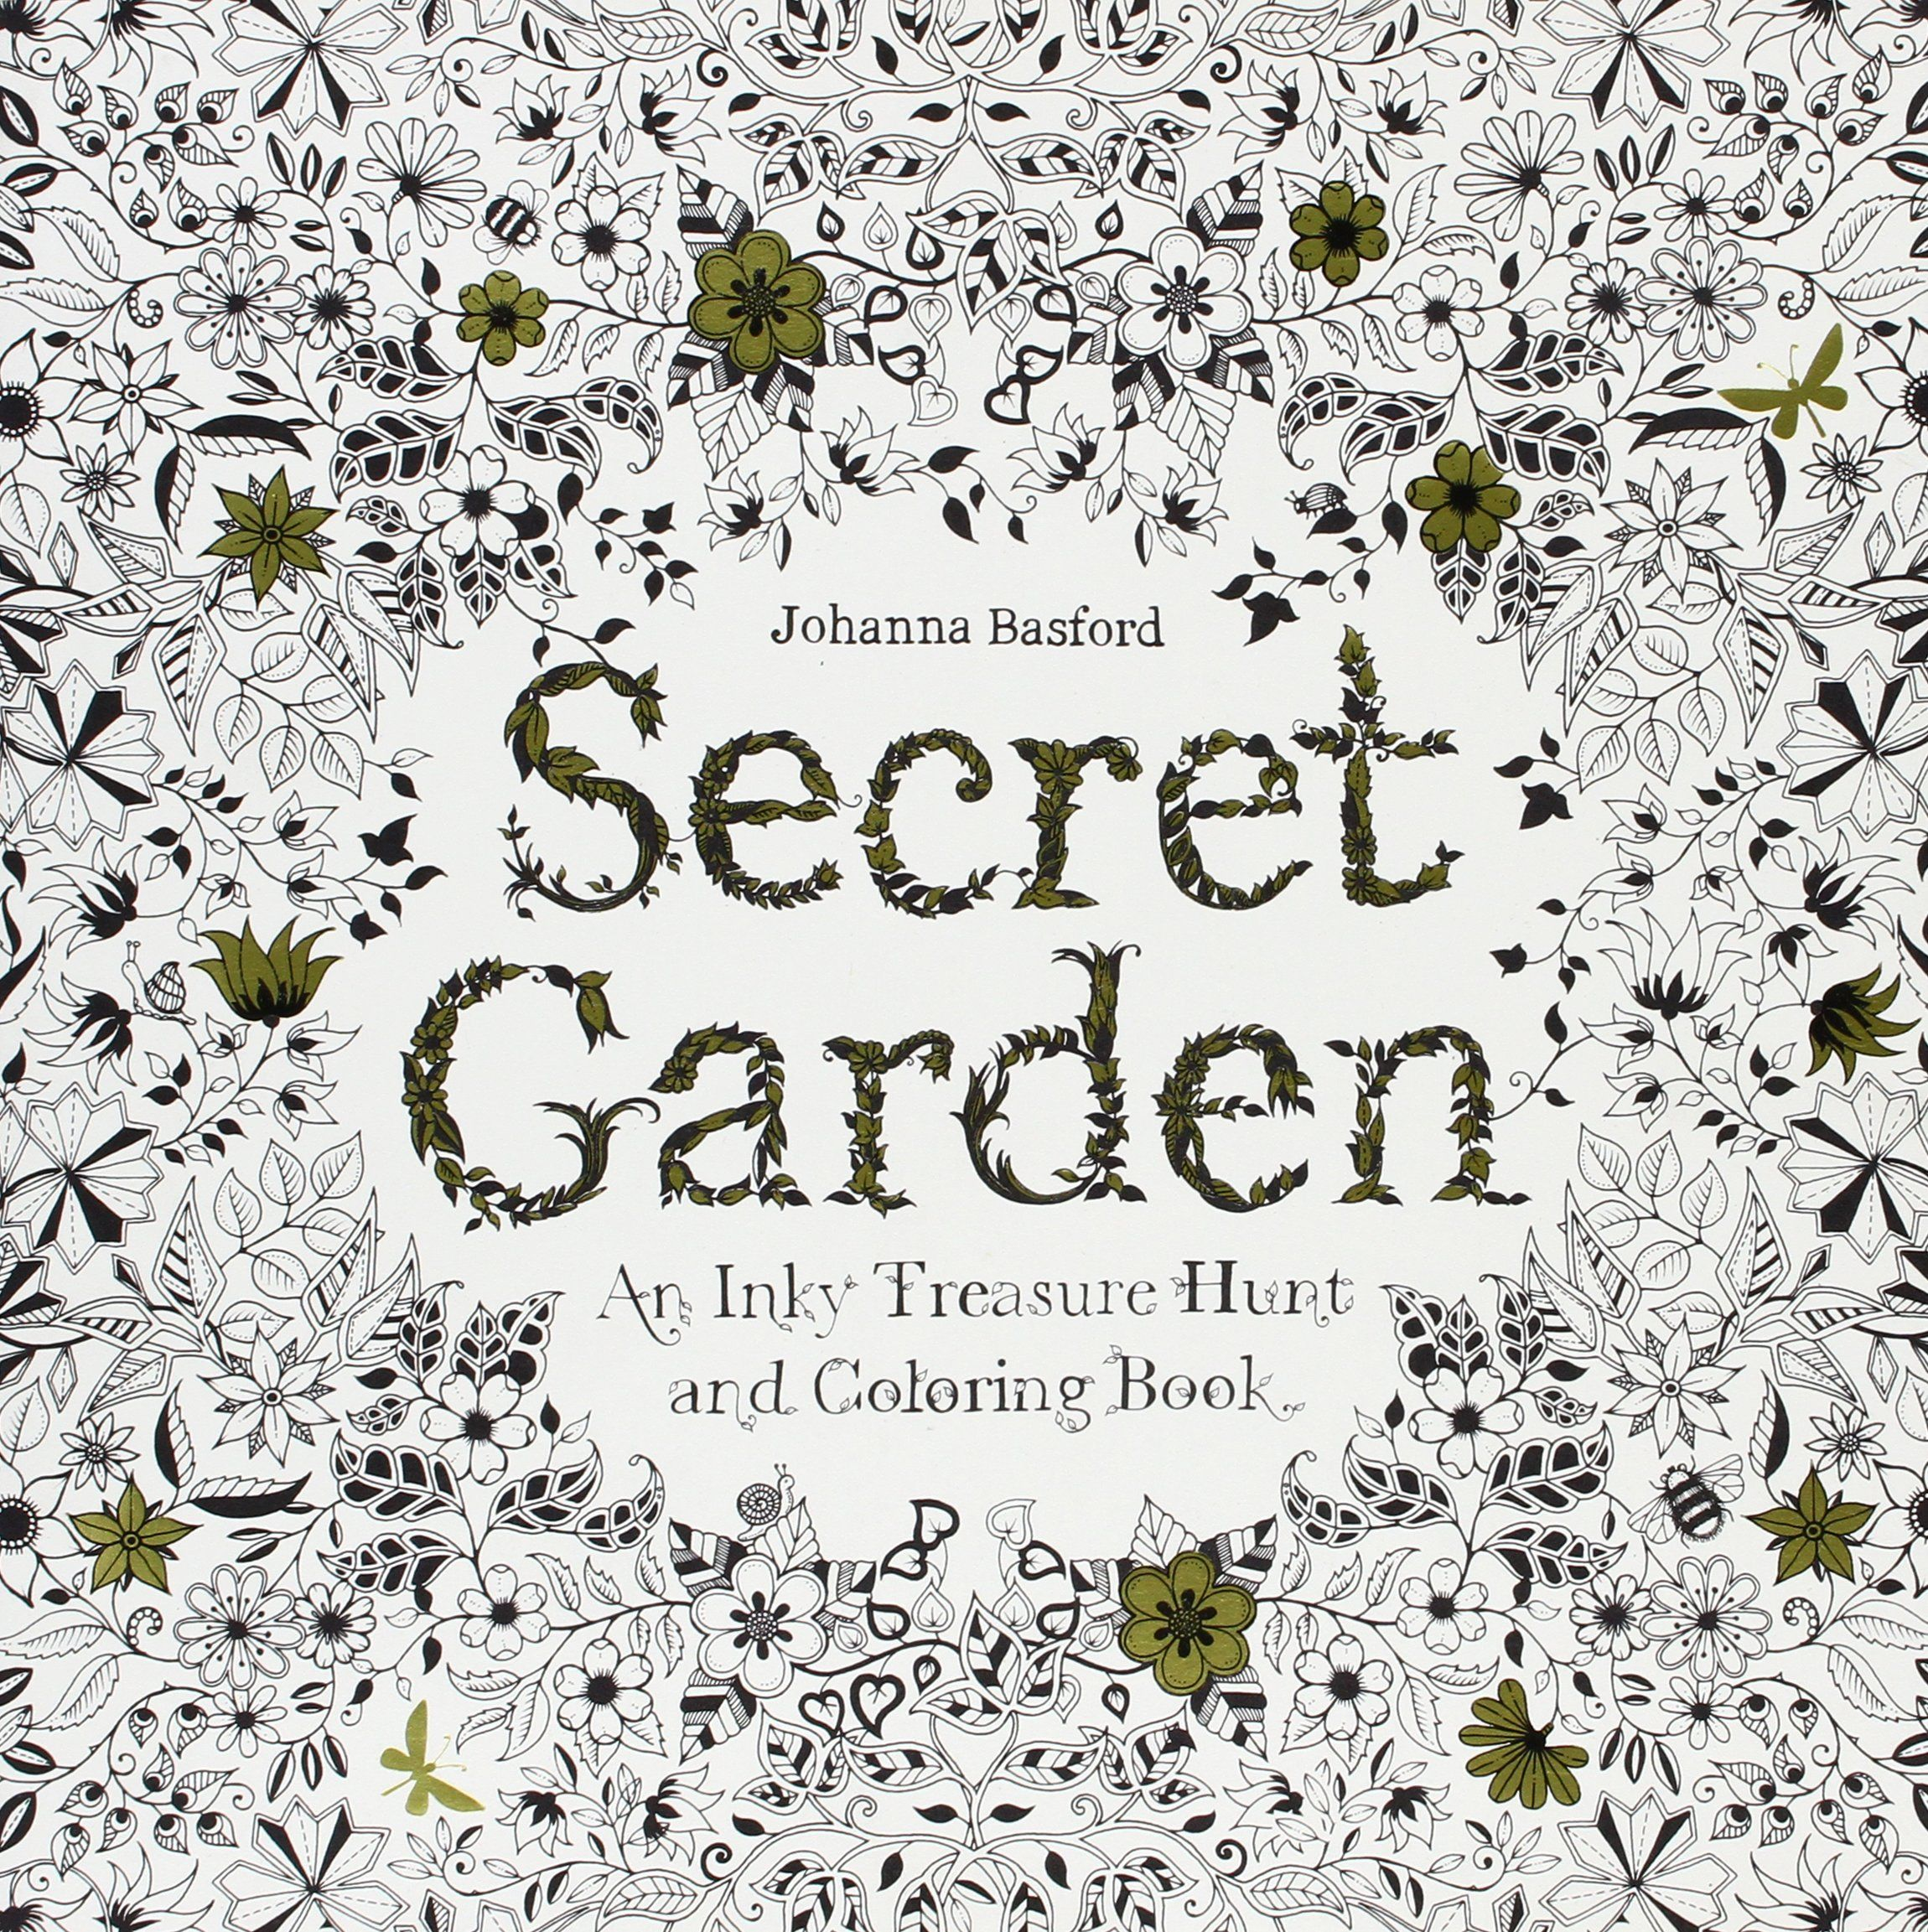 Secret Garden By Johanna Basford Amazon Adult Coloring Books Adultcoloringbooks Gelpens Stressrelief